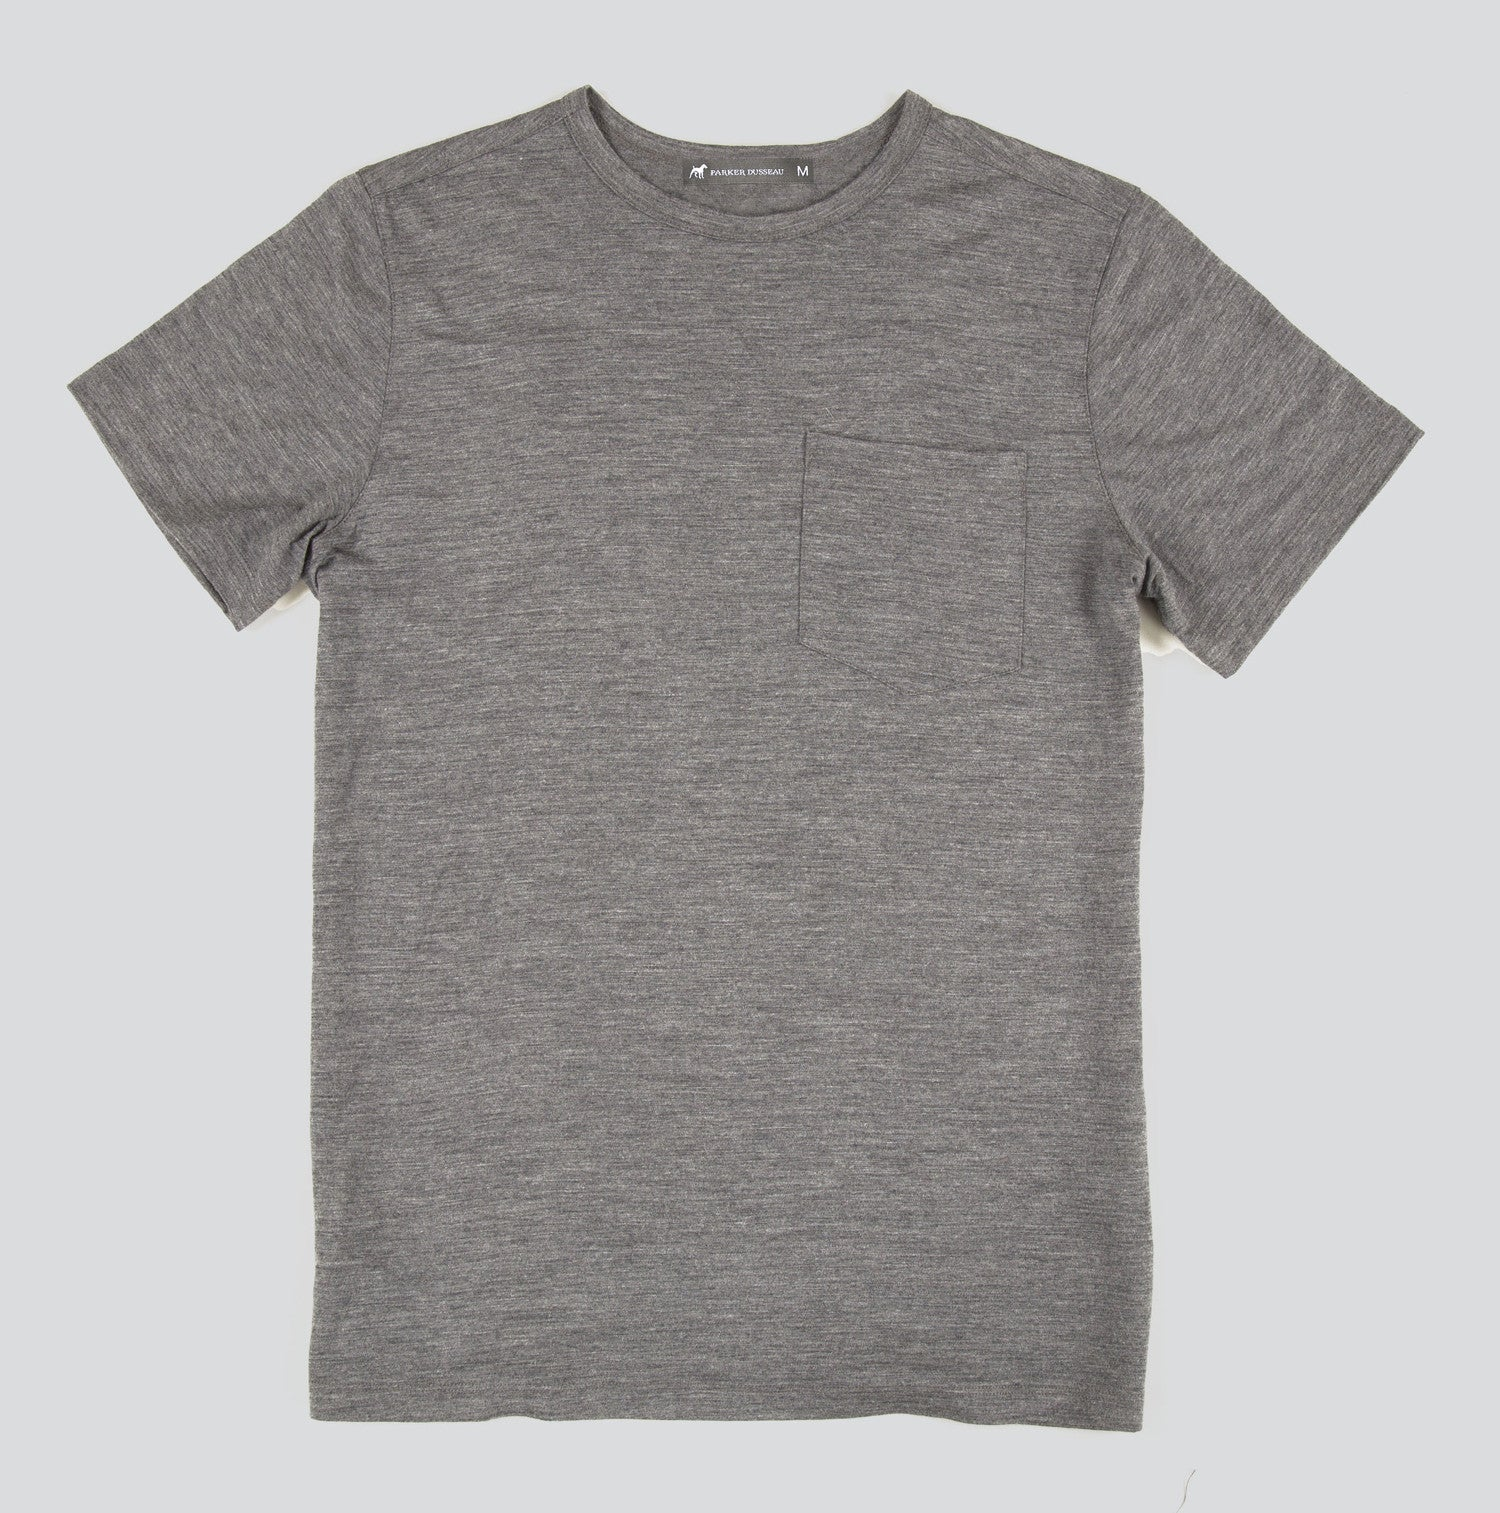 Merino Wool Single Pocket Tee - Titanium Short Sleeve Merino Tee- Parker Dusseau : Functional Menswear Essentials for the Always Ready Lifestyle. Based in San Francisco, California